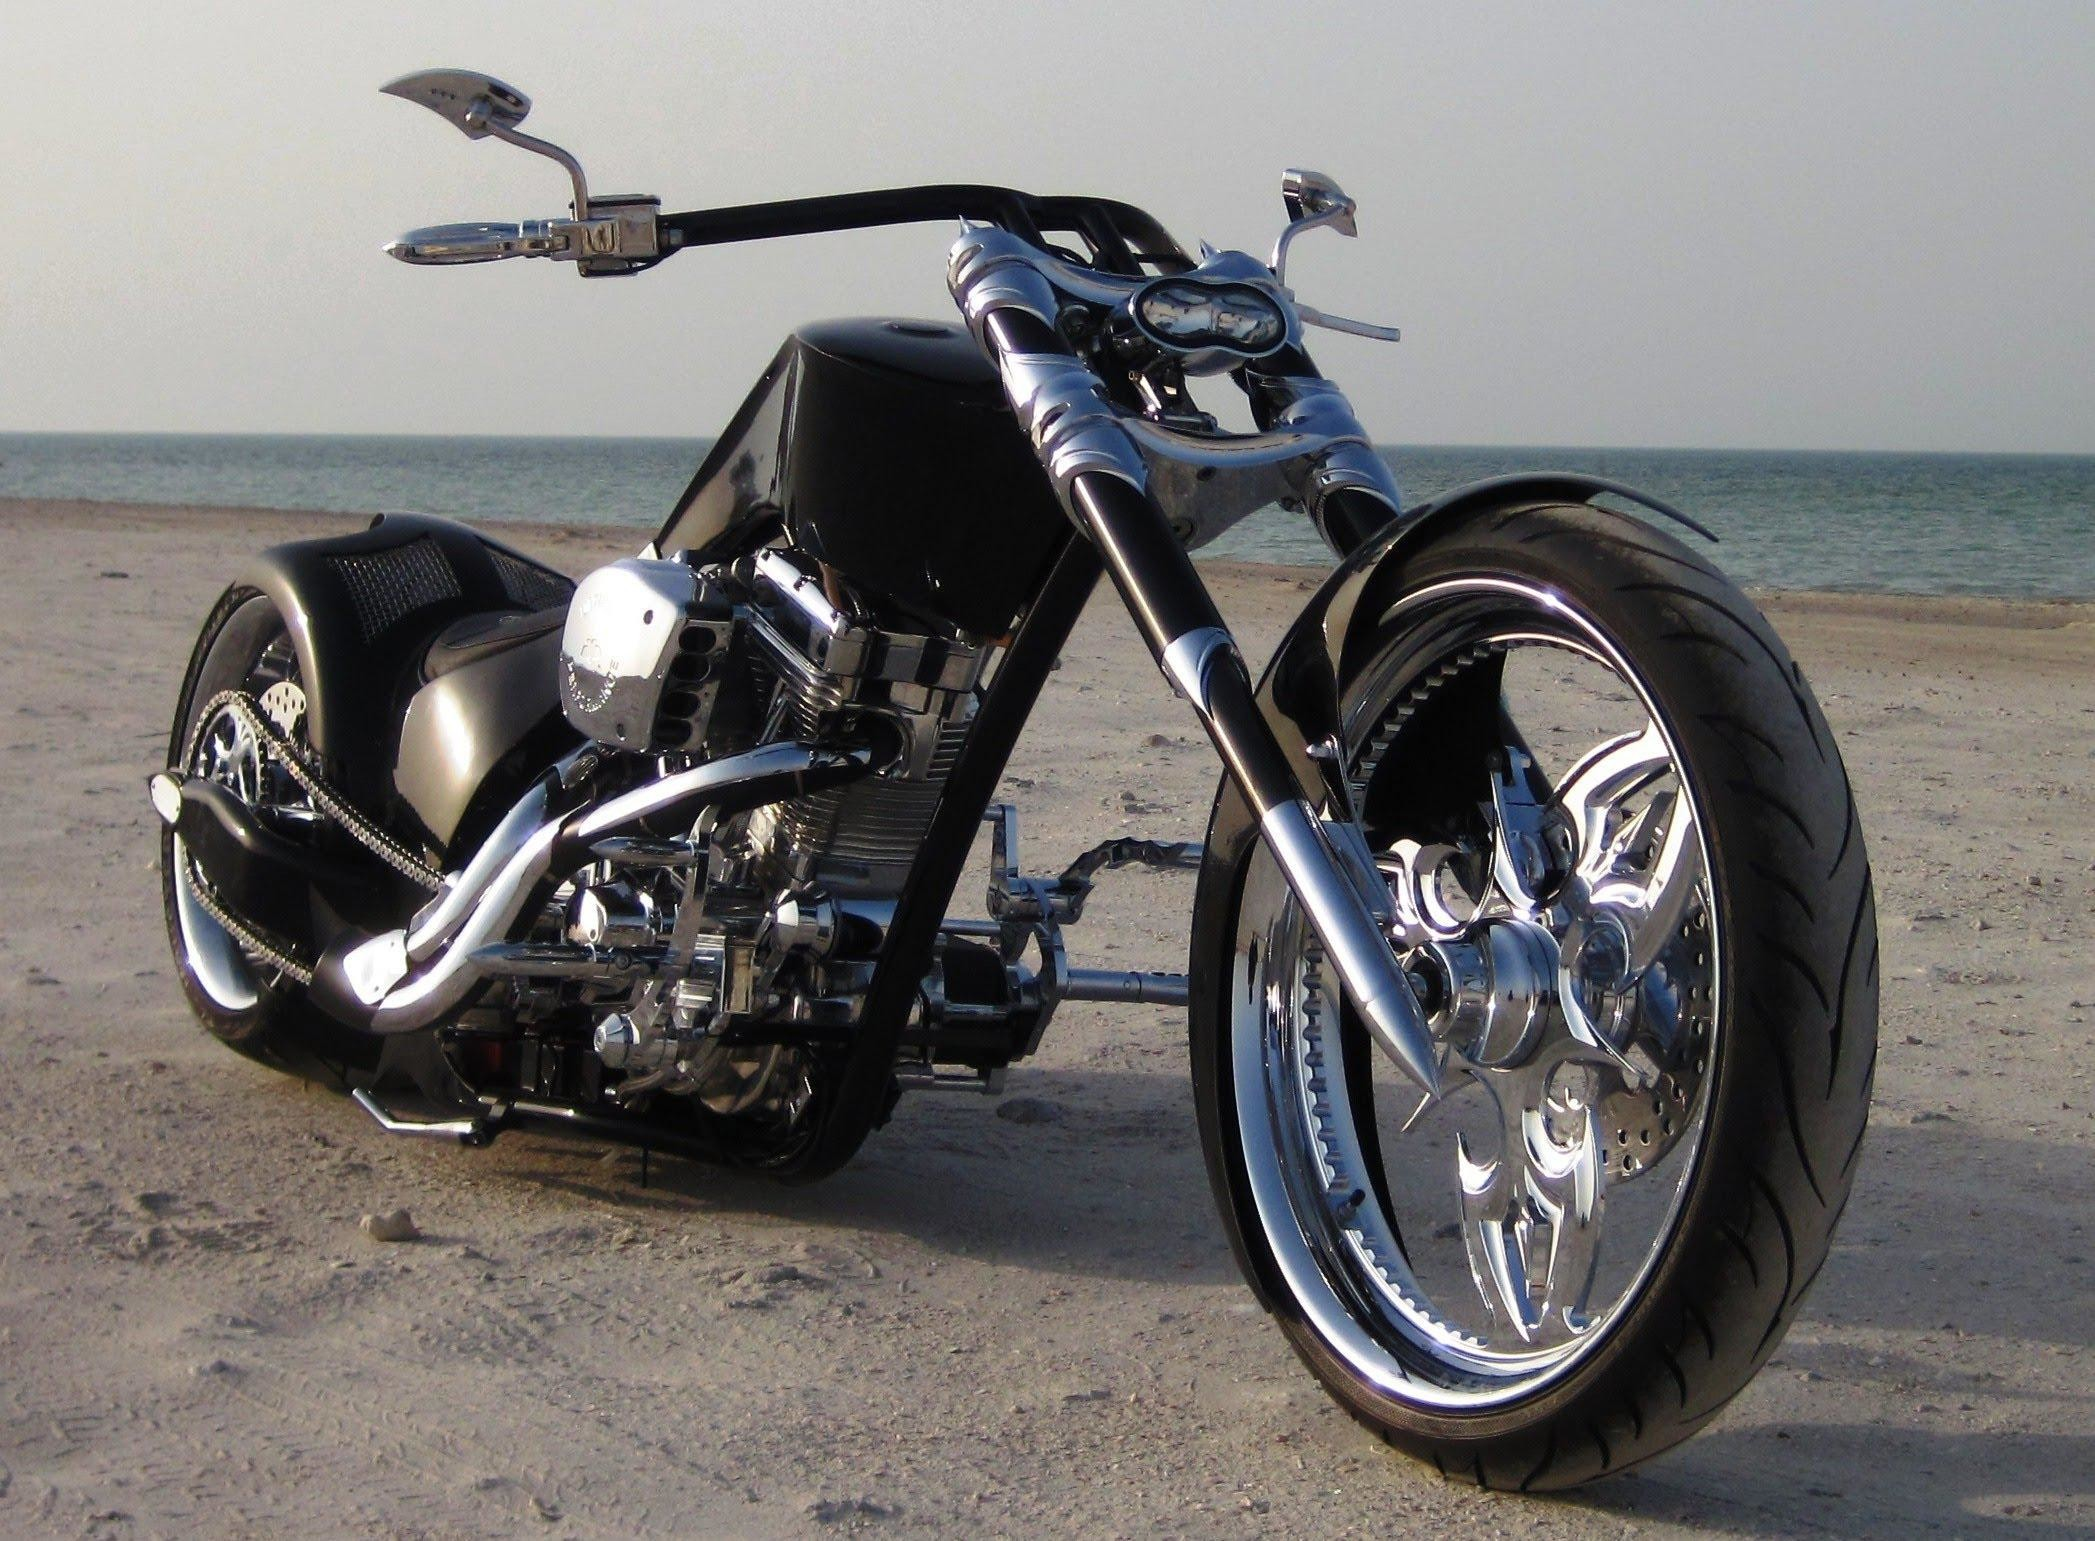 2095x1541 Chopper Wallpaper - 52DazheW Gallery BIKES CUSTOM CHOPPER DESKTOP ...